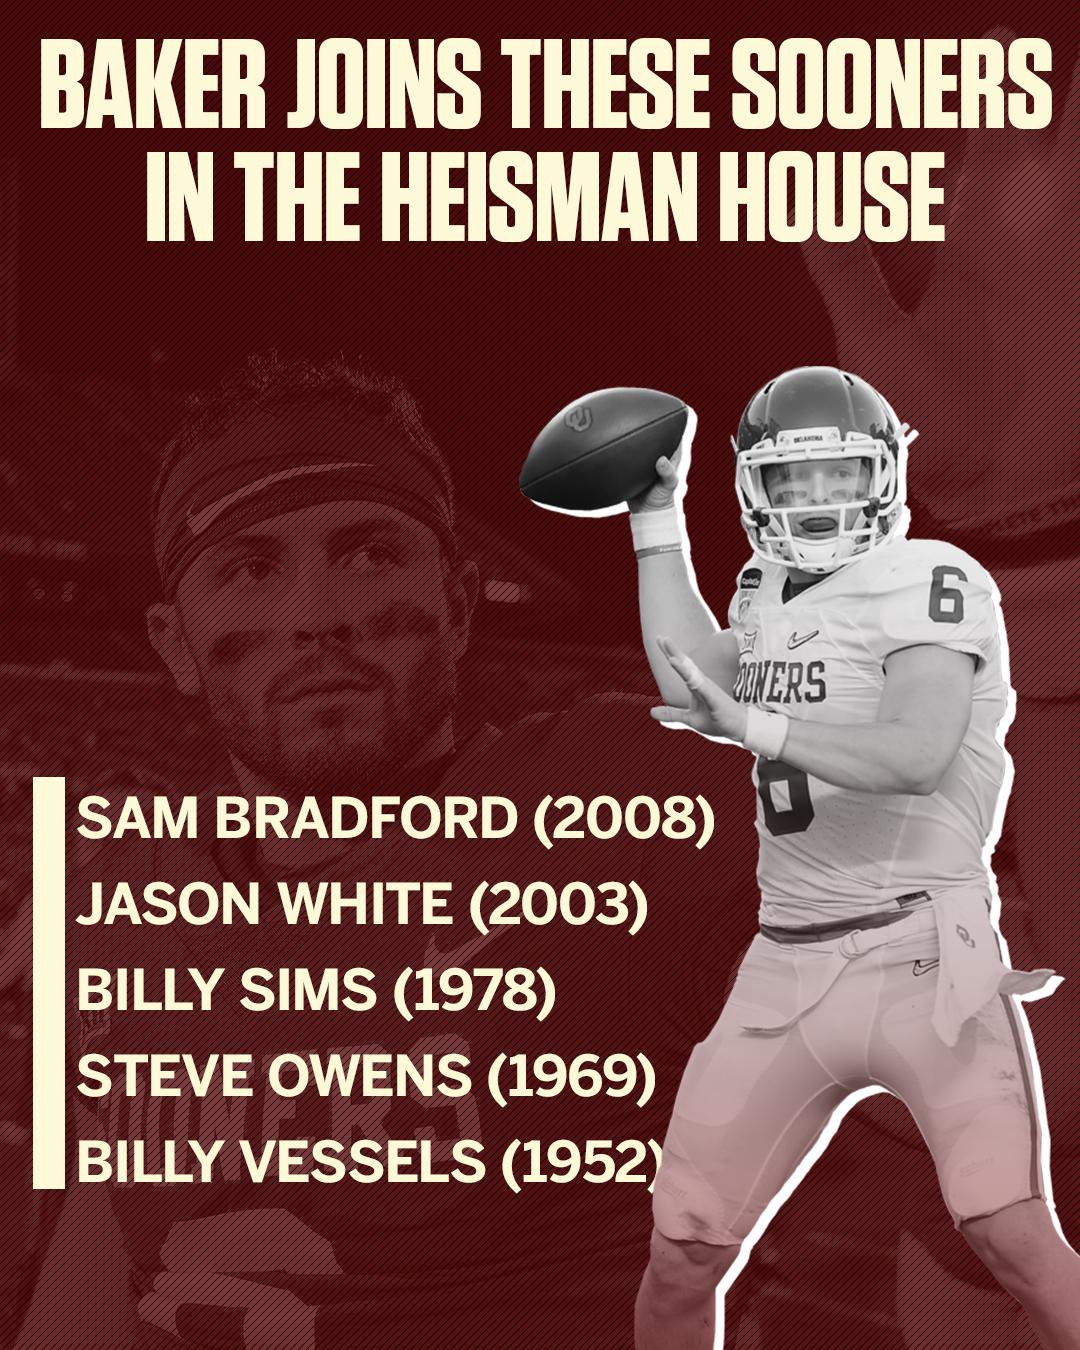 The Oklahoma wing of the @NissanUSA #HeismanHouse just got a little bit more crowded. https://t.co/rrzE5bbr0Q